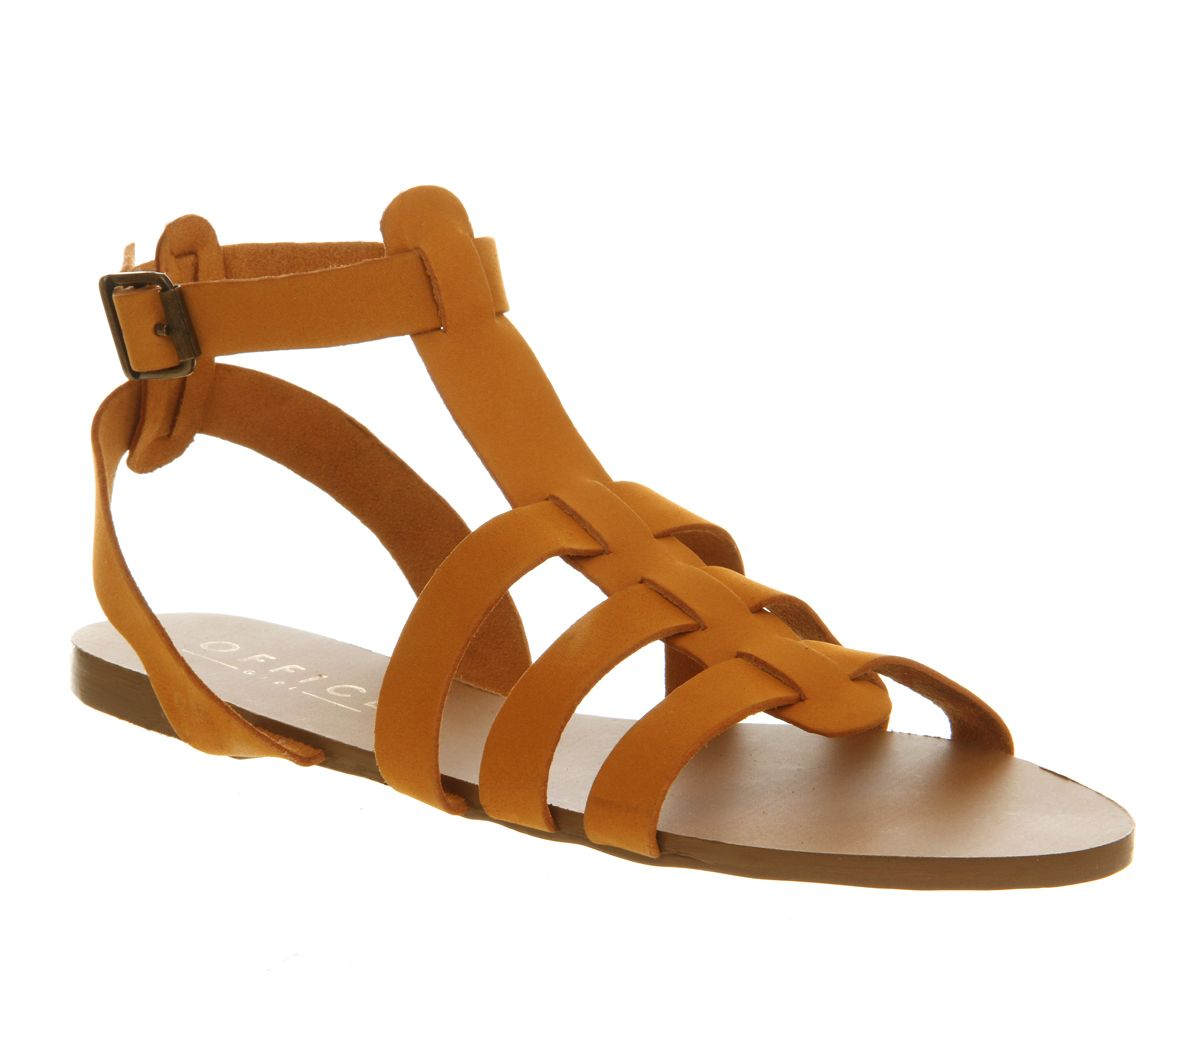 Hero gladiator leather open toe buckle sandals